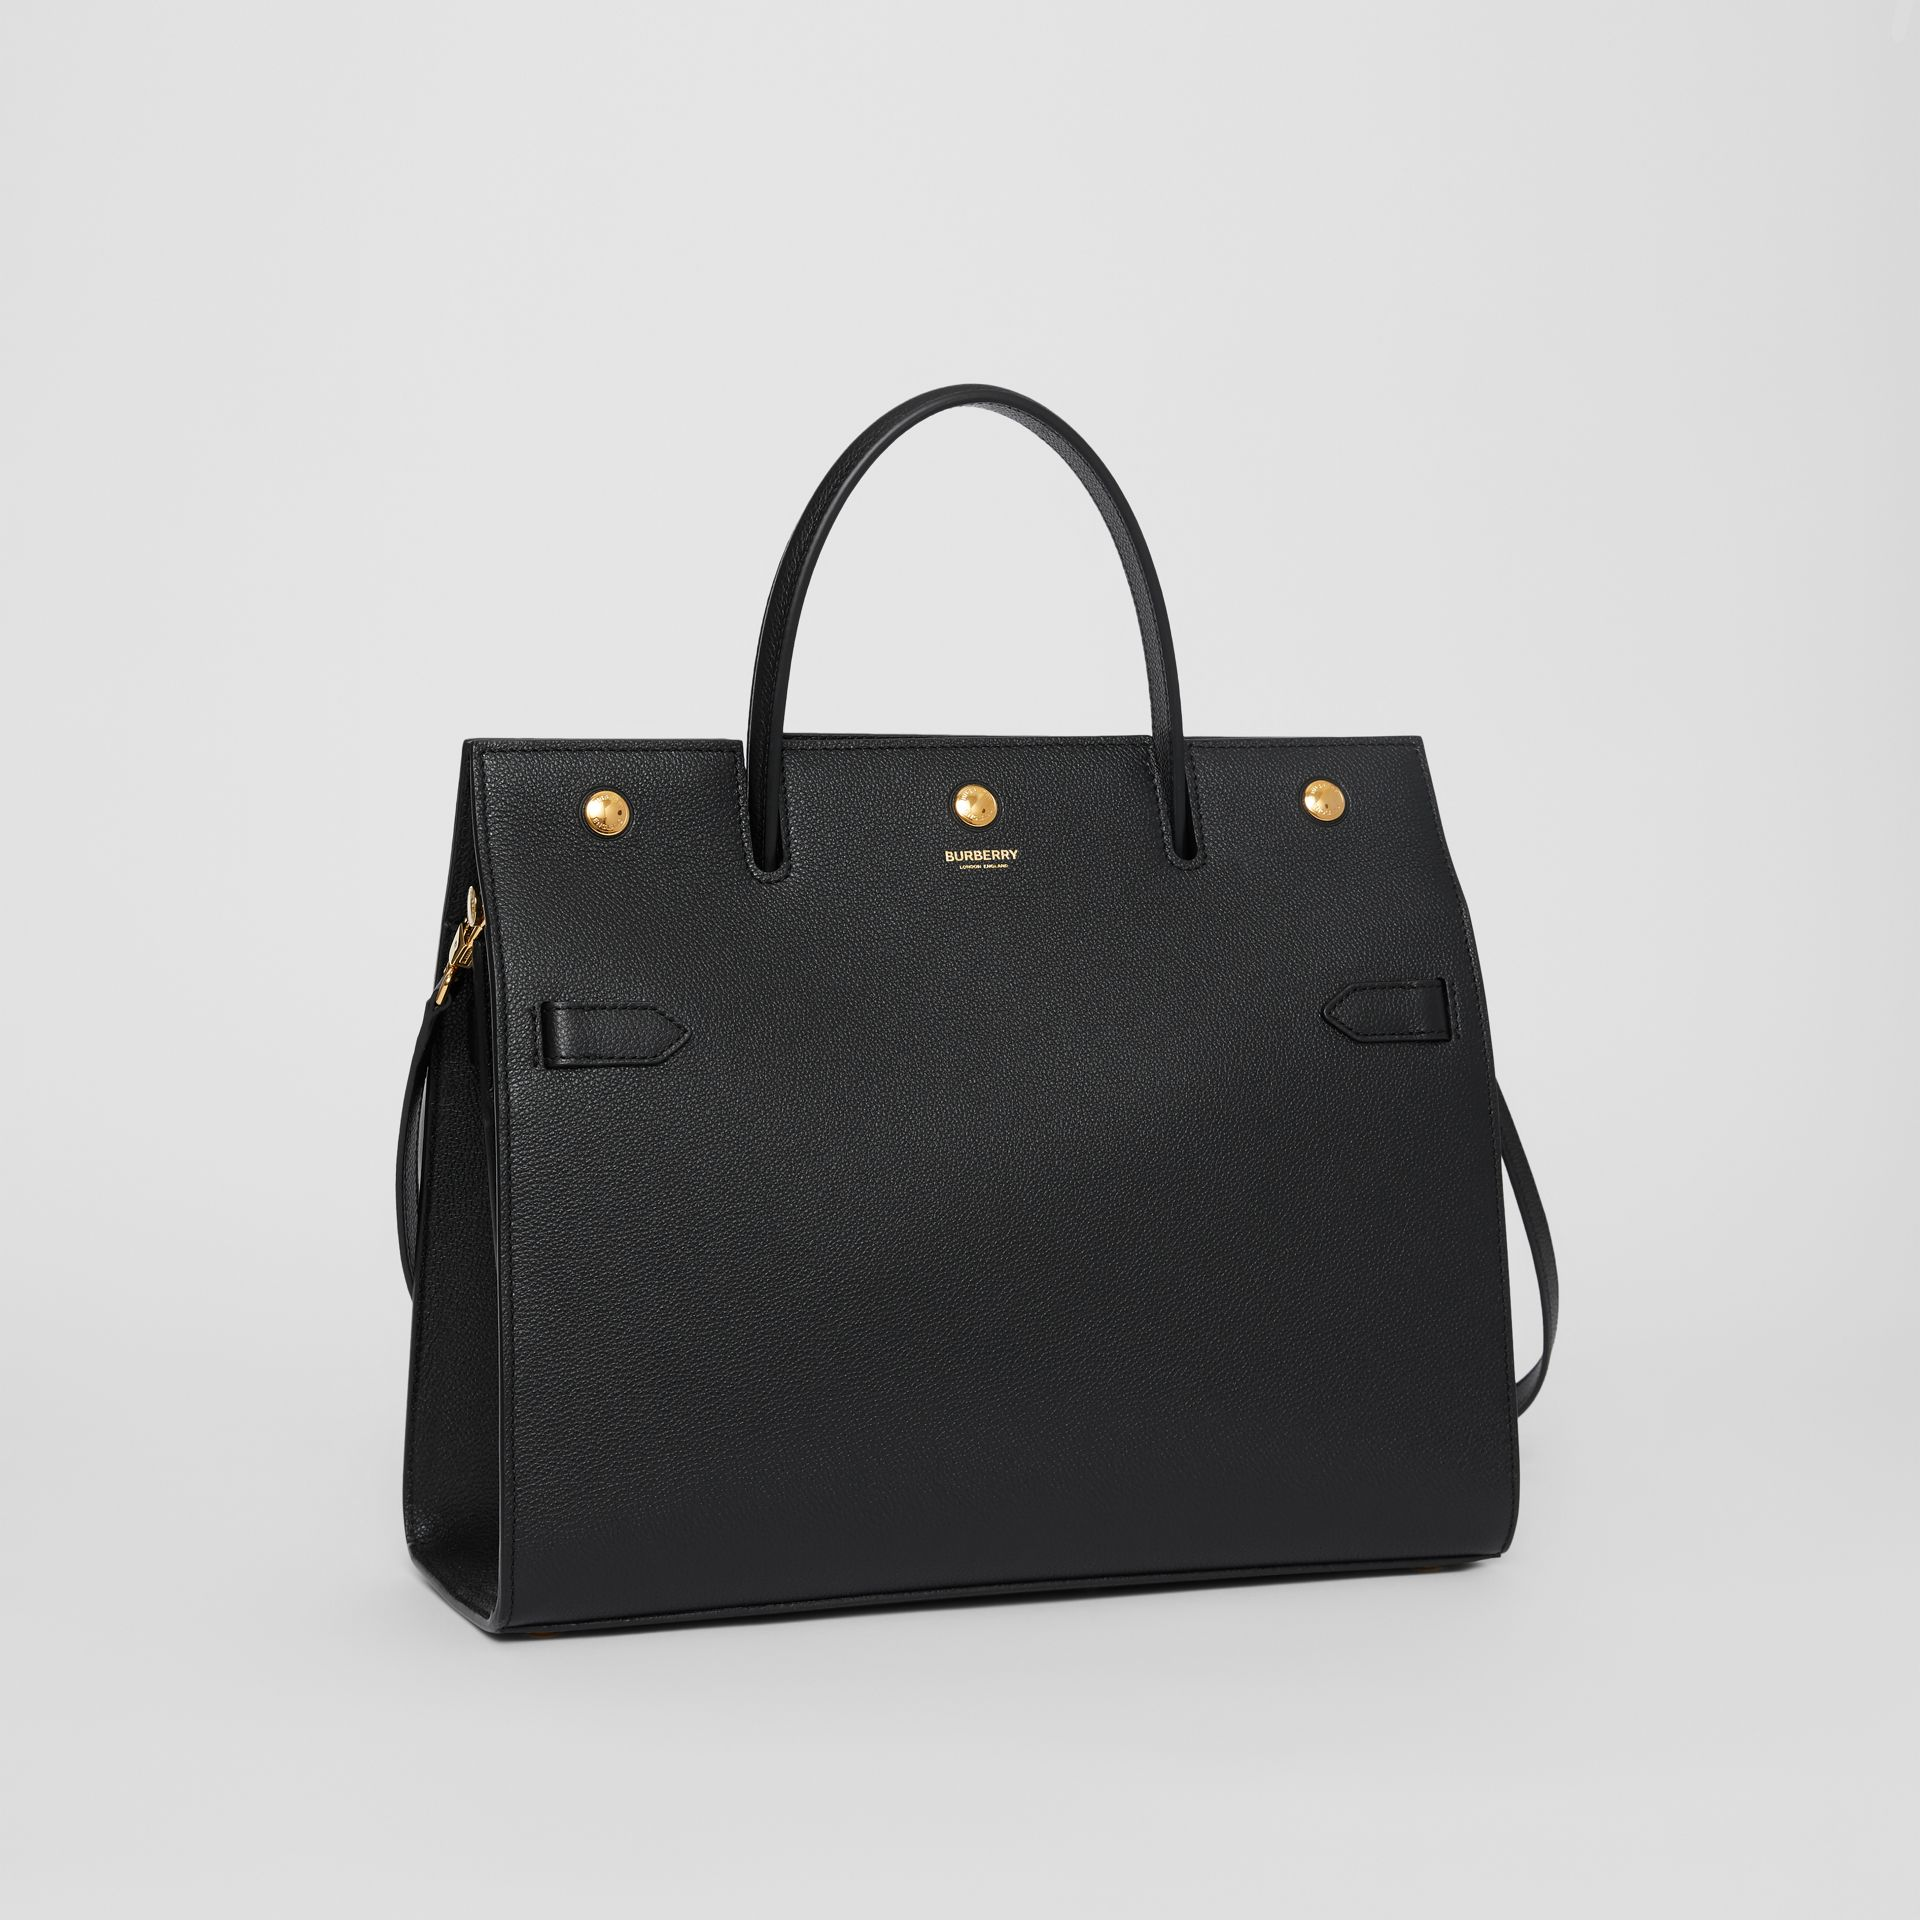 Medium Leather Title Bag in Black - Women | Burberry Hong Kong S.A.R - gallery image 6